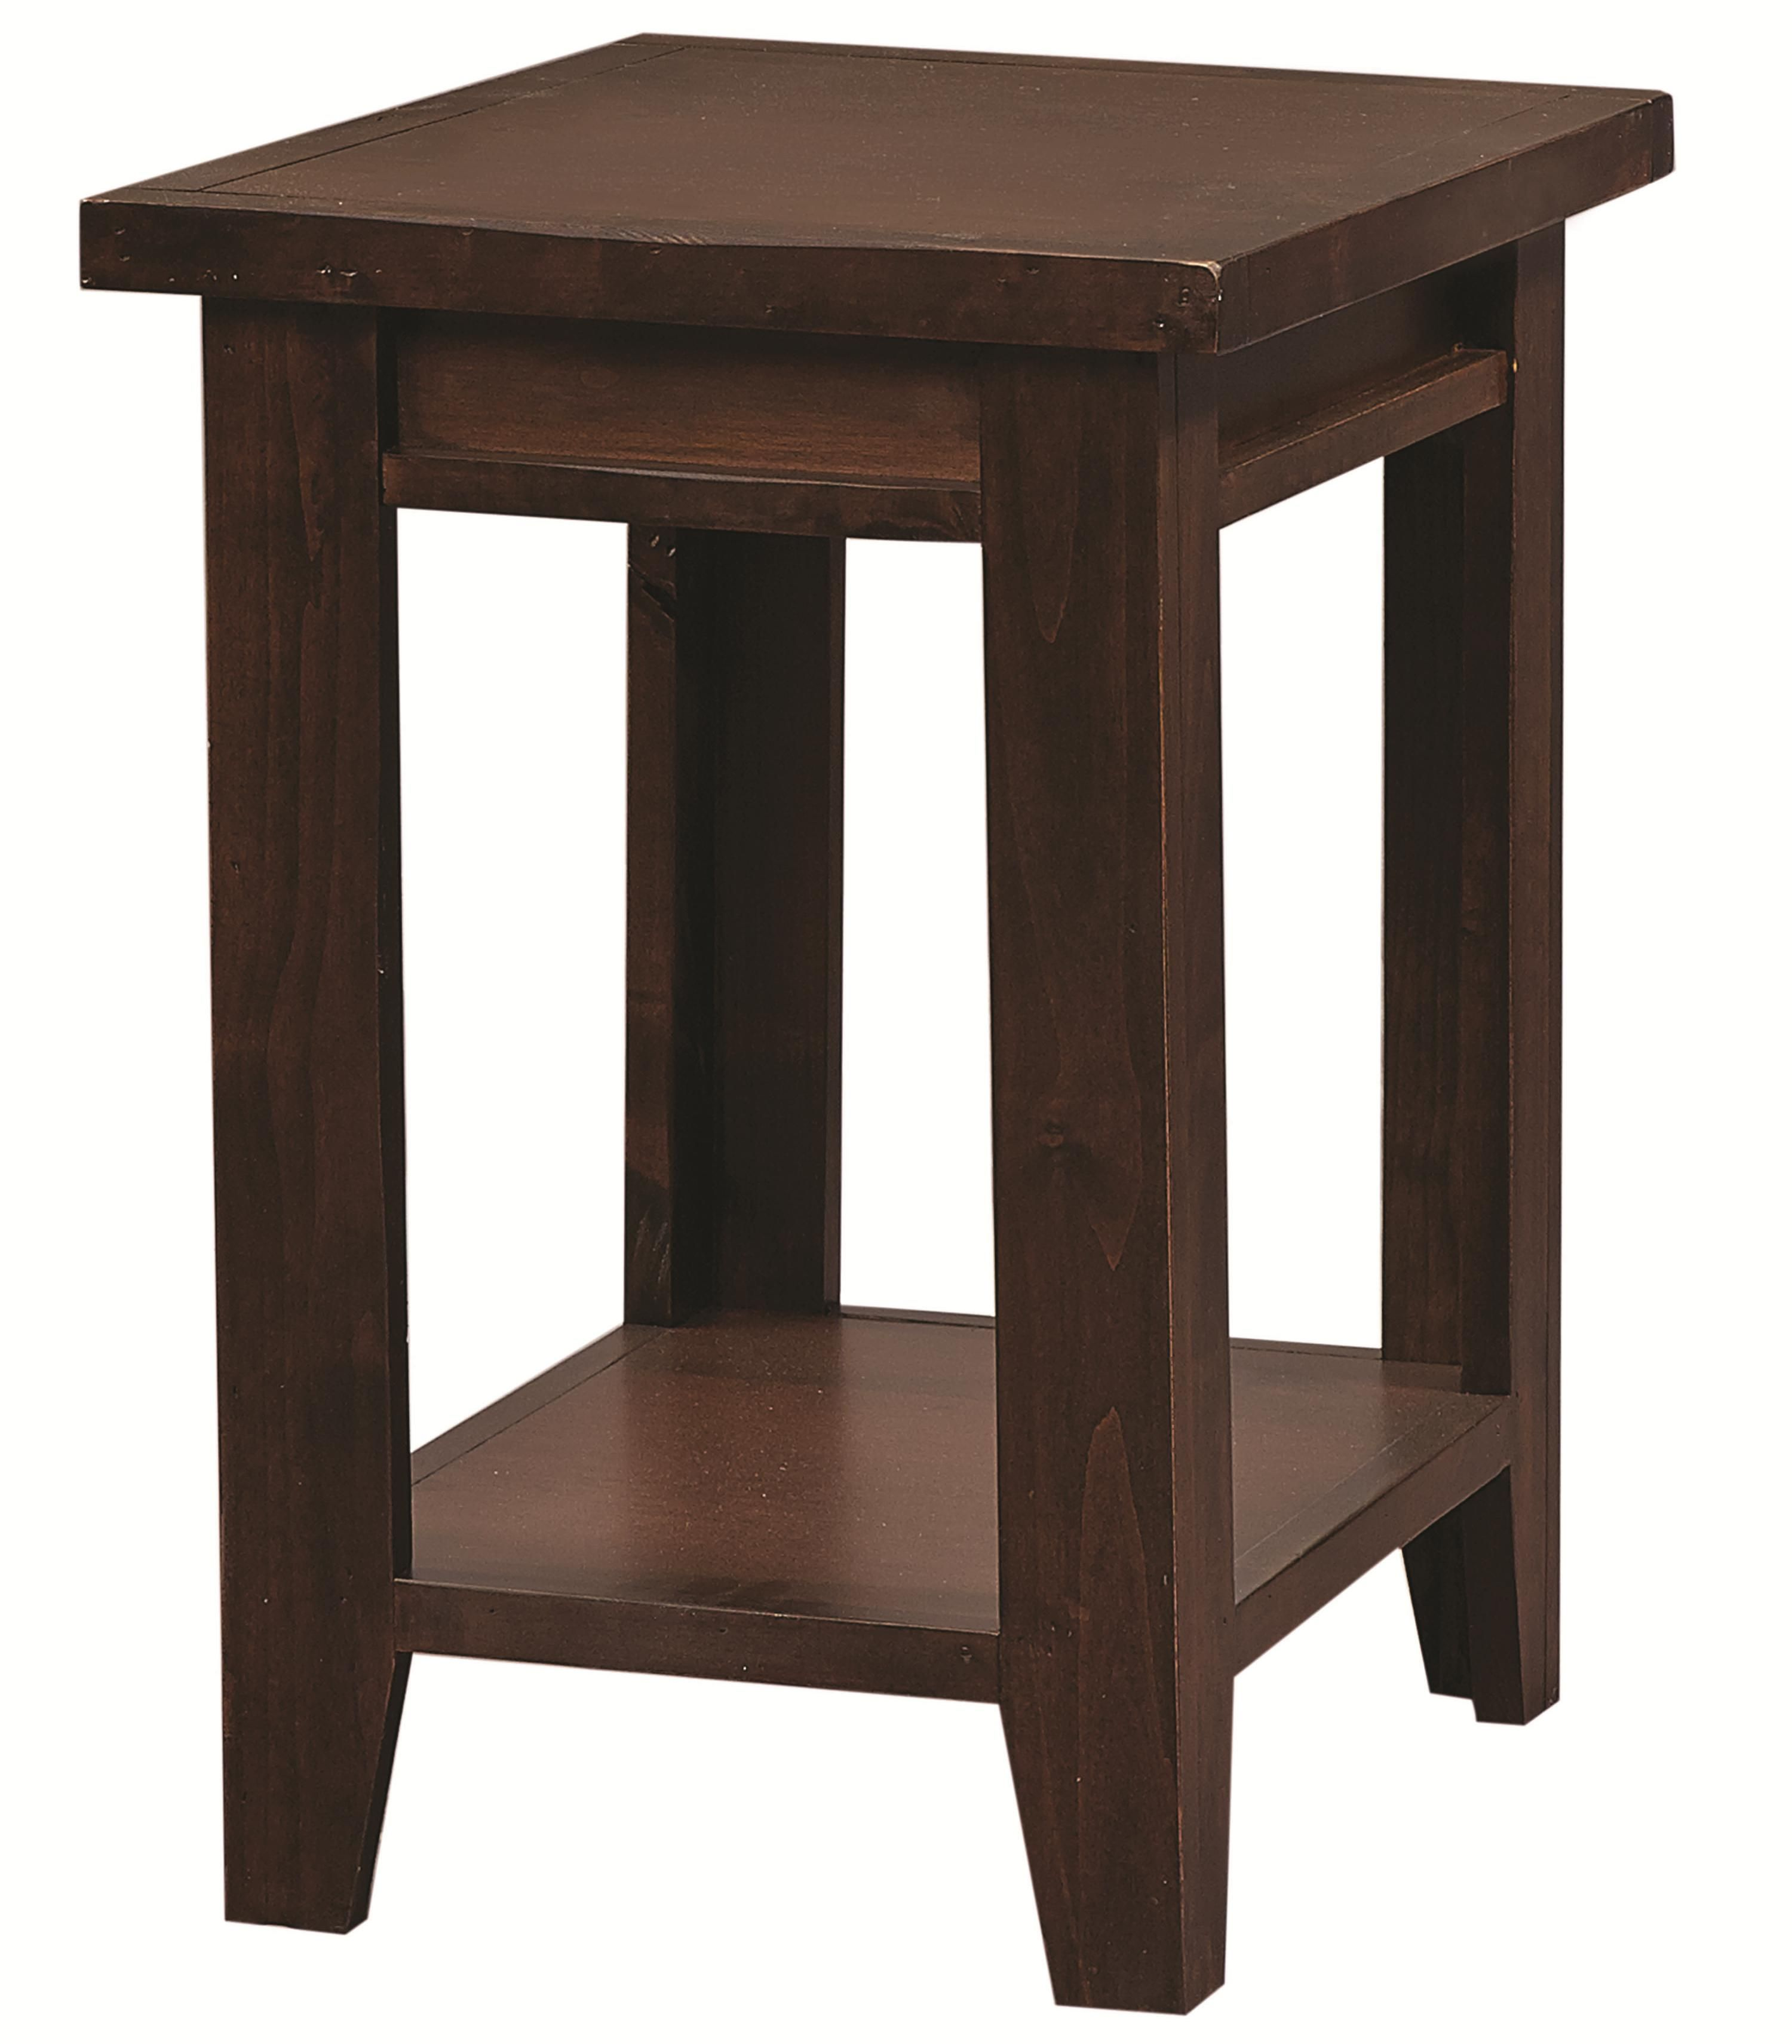 Alder grove chairside table with shelf by aspenhome family refresh